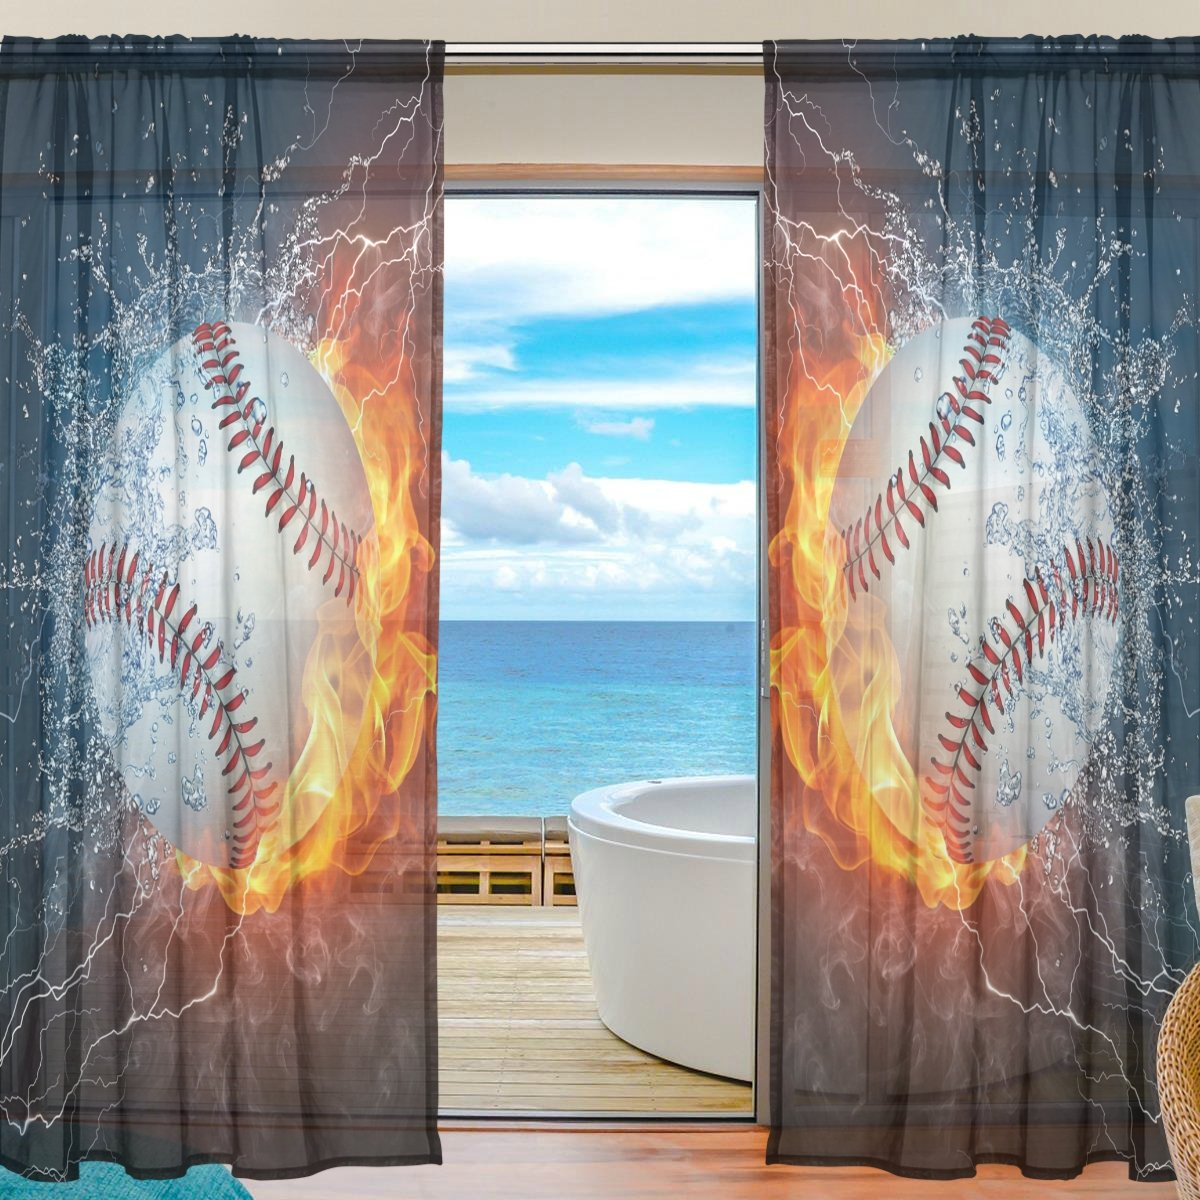 SEULIFE Window Sheer Curtain, Sport Ball Baseball in Fire and Water Voile Curtain Drapes for Door Kitchen Living Room Bedroom 55x84 inches 2 Panels by SEULIFE